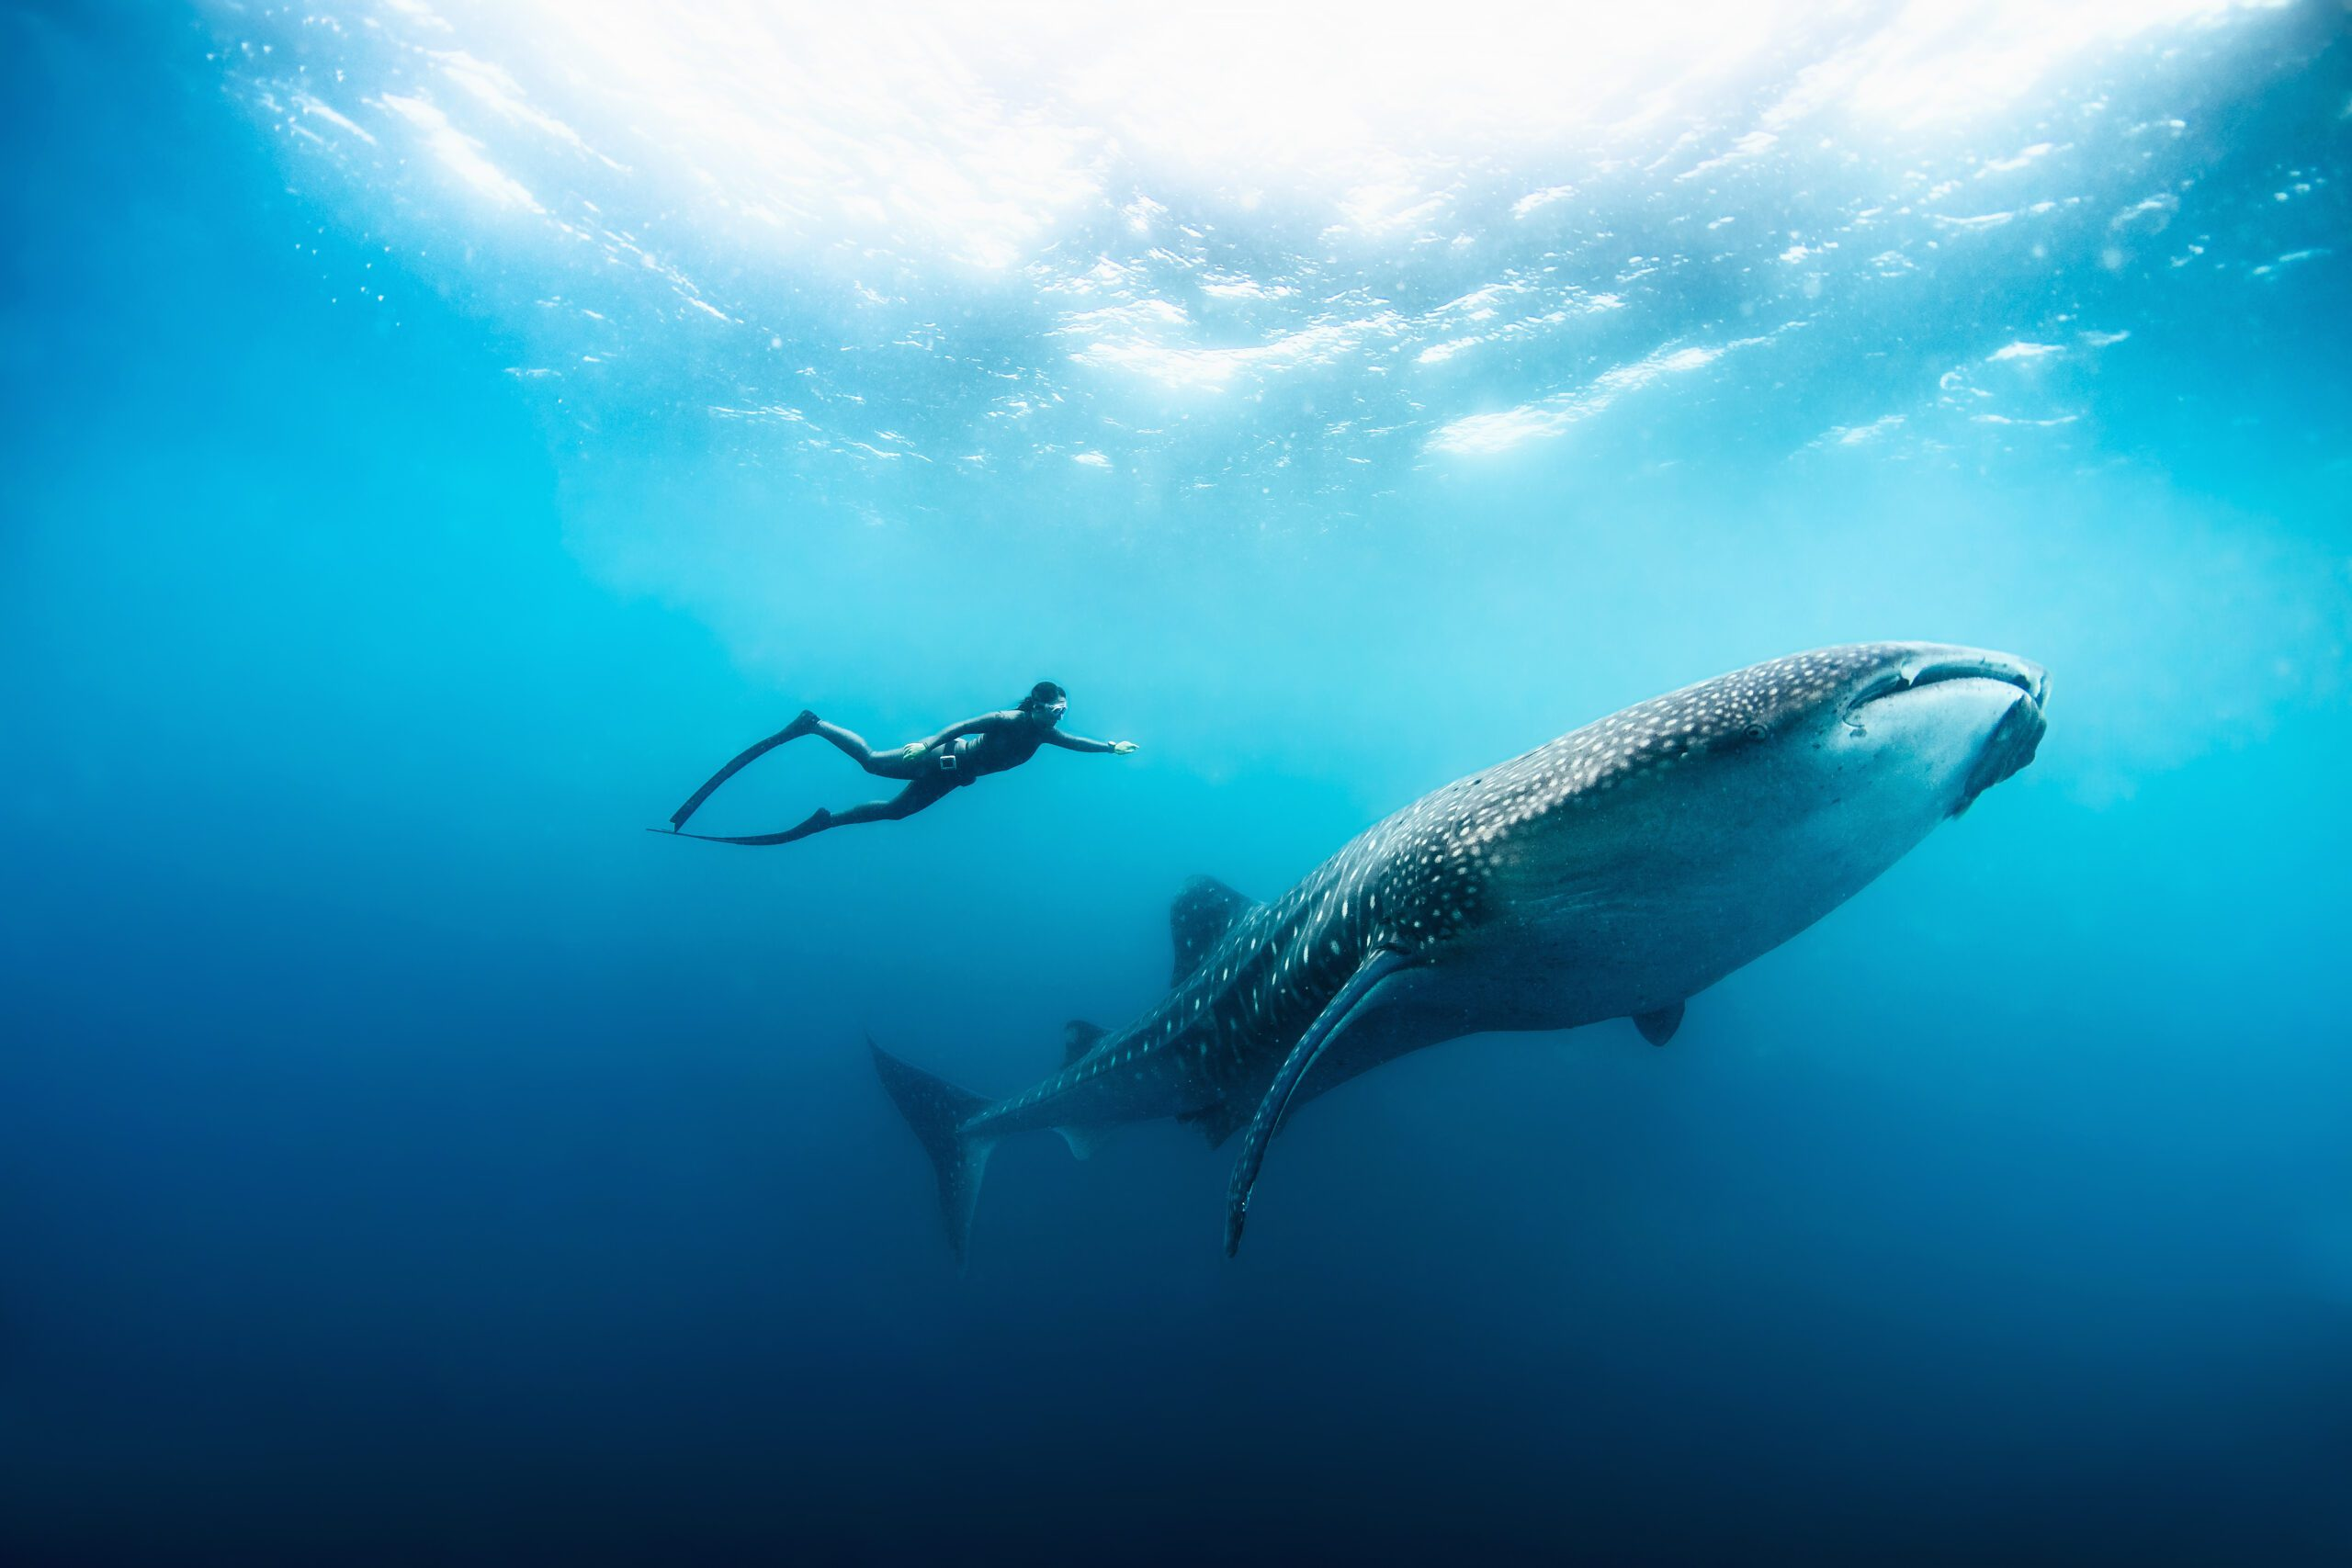 diver swimming next to whale shark